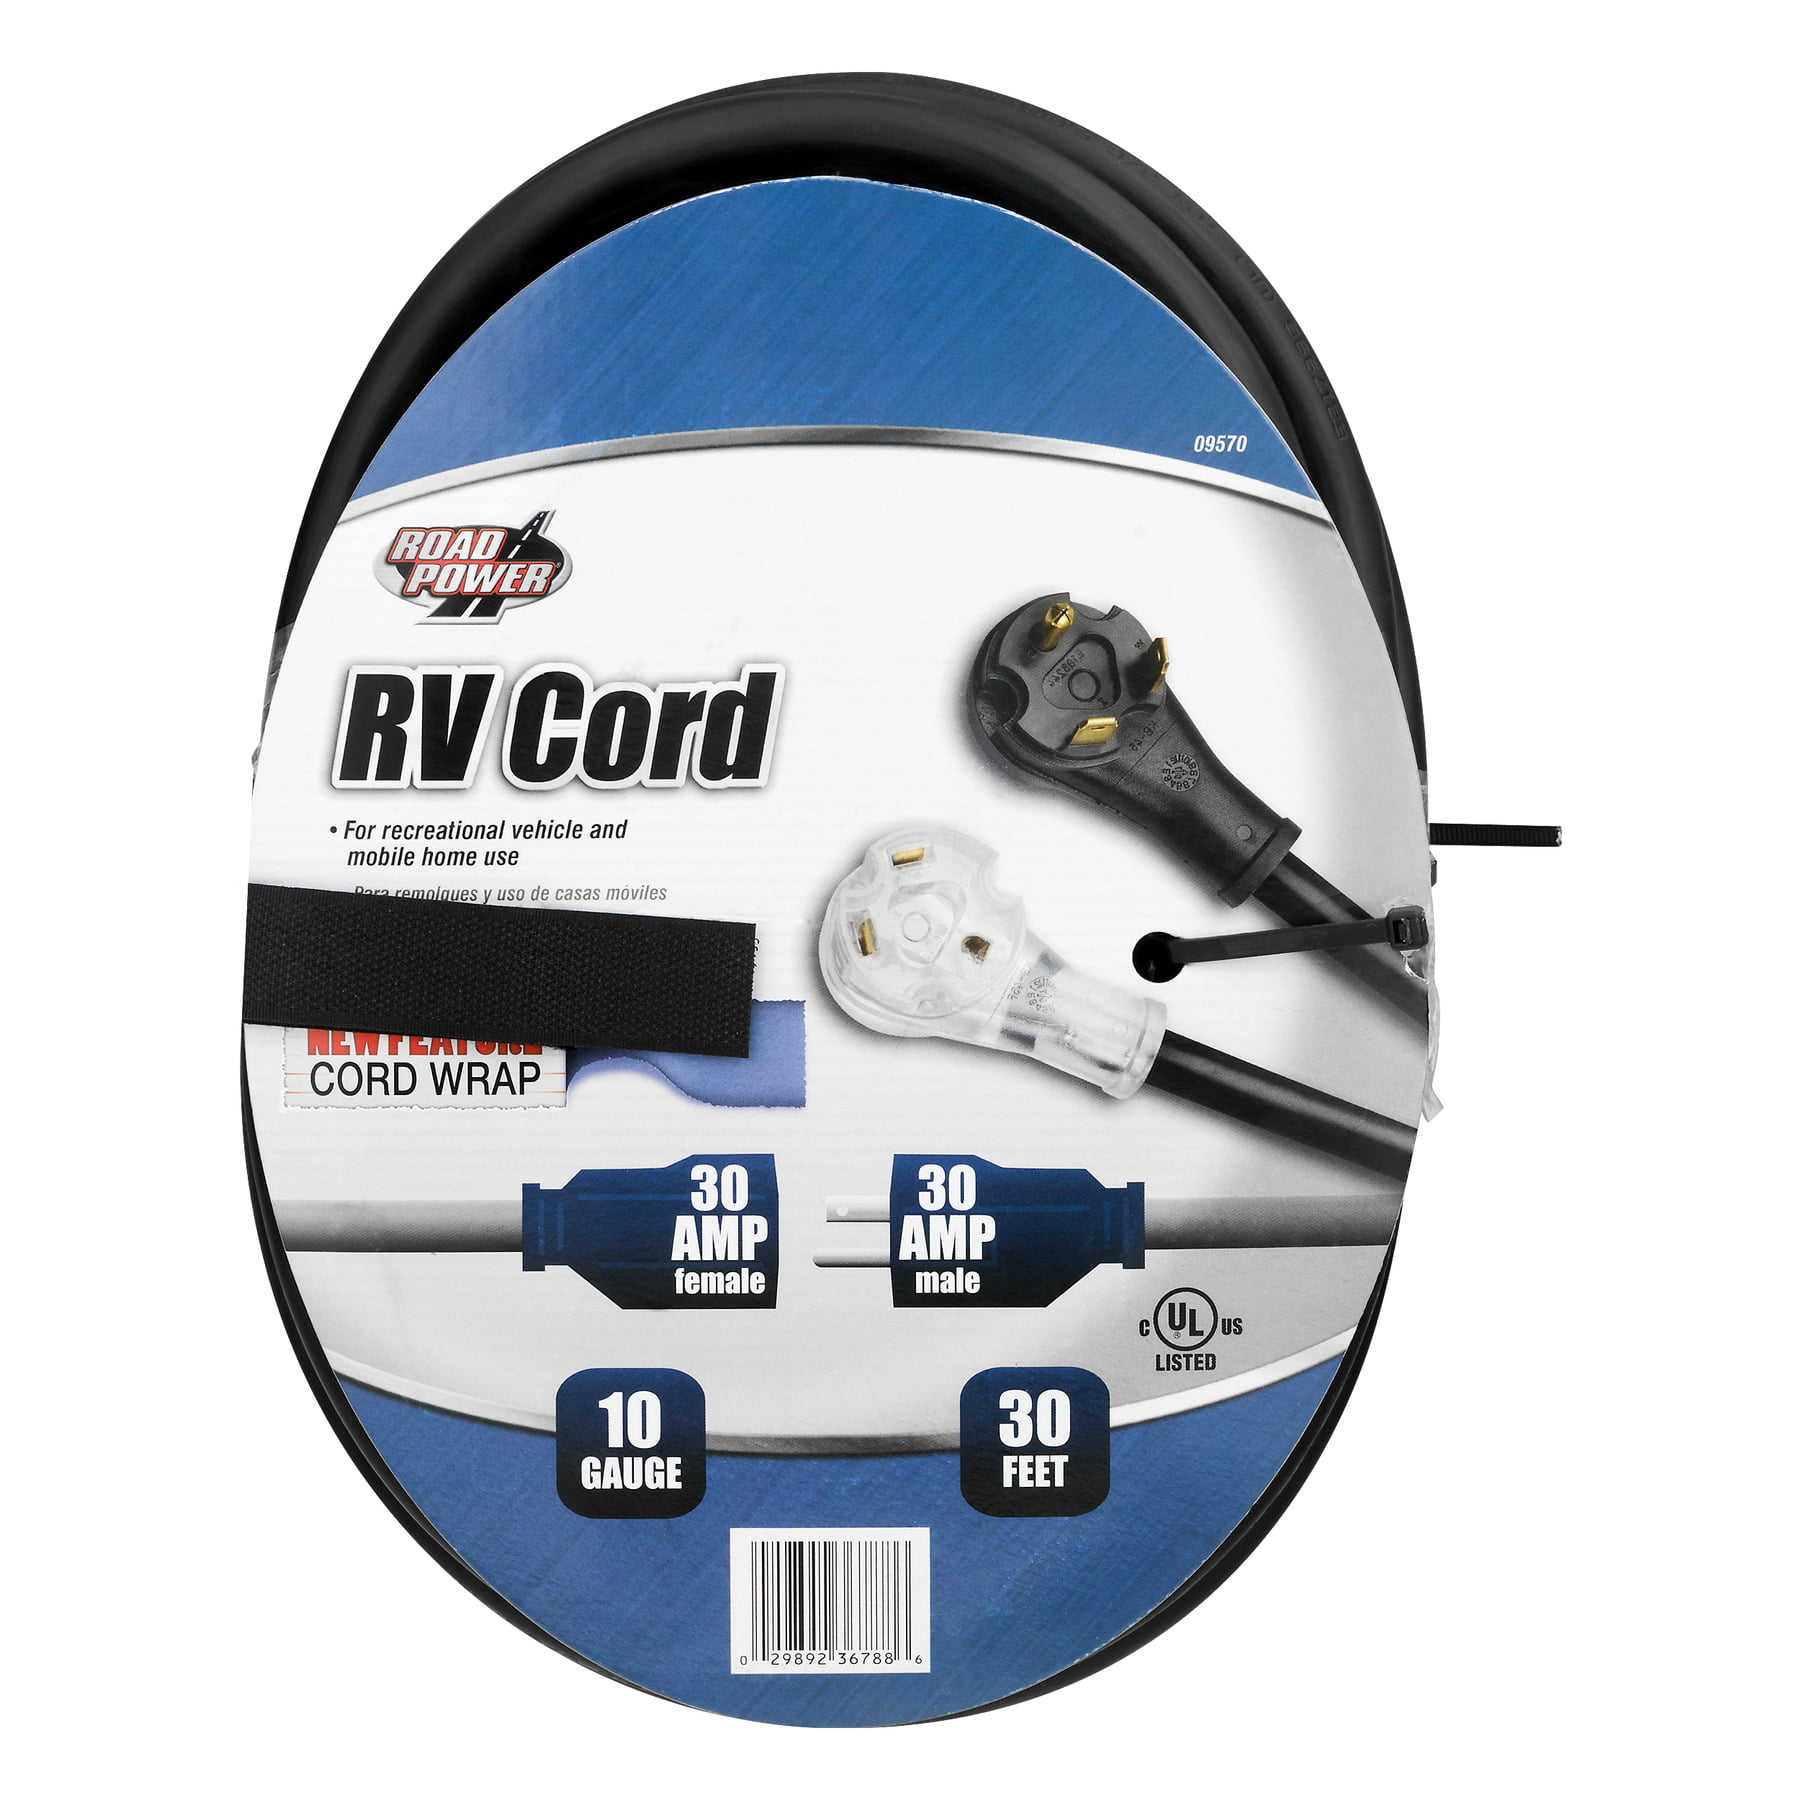 Road Power 10 3 Gauge 30 Amp RV Extension Cord 30 Feet Walmart